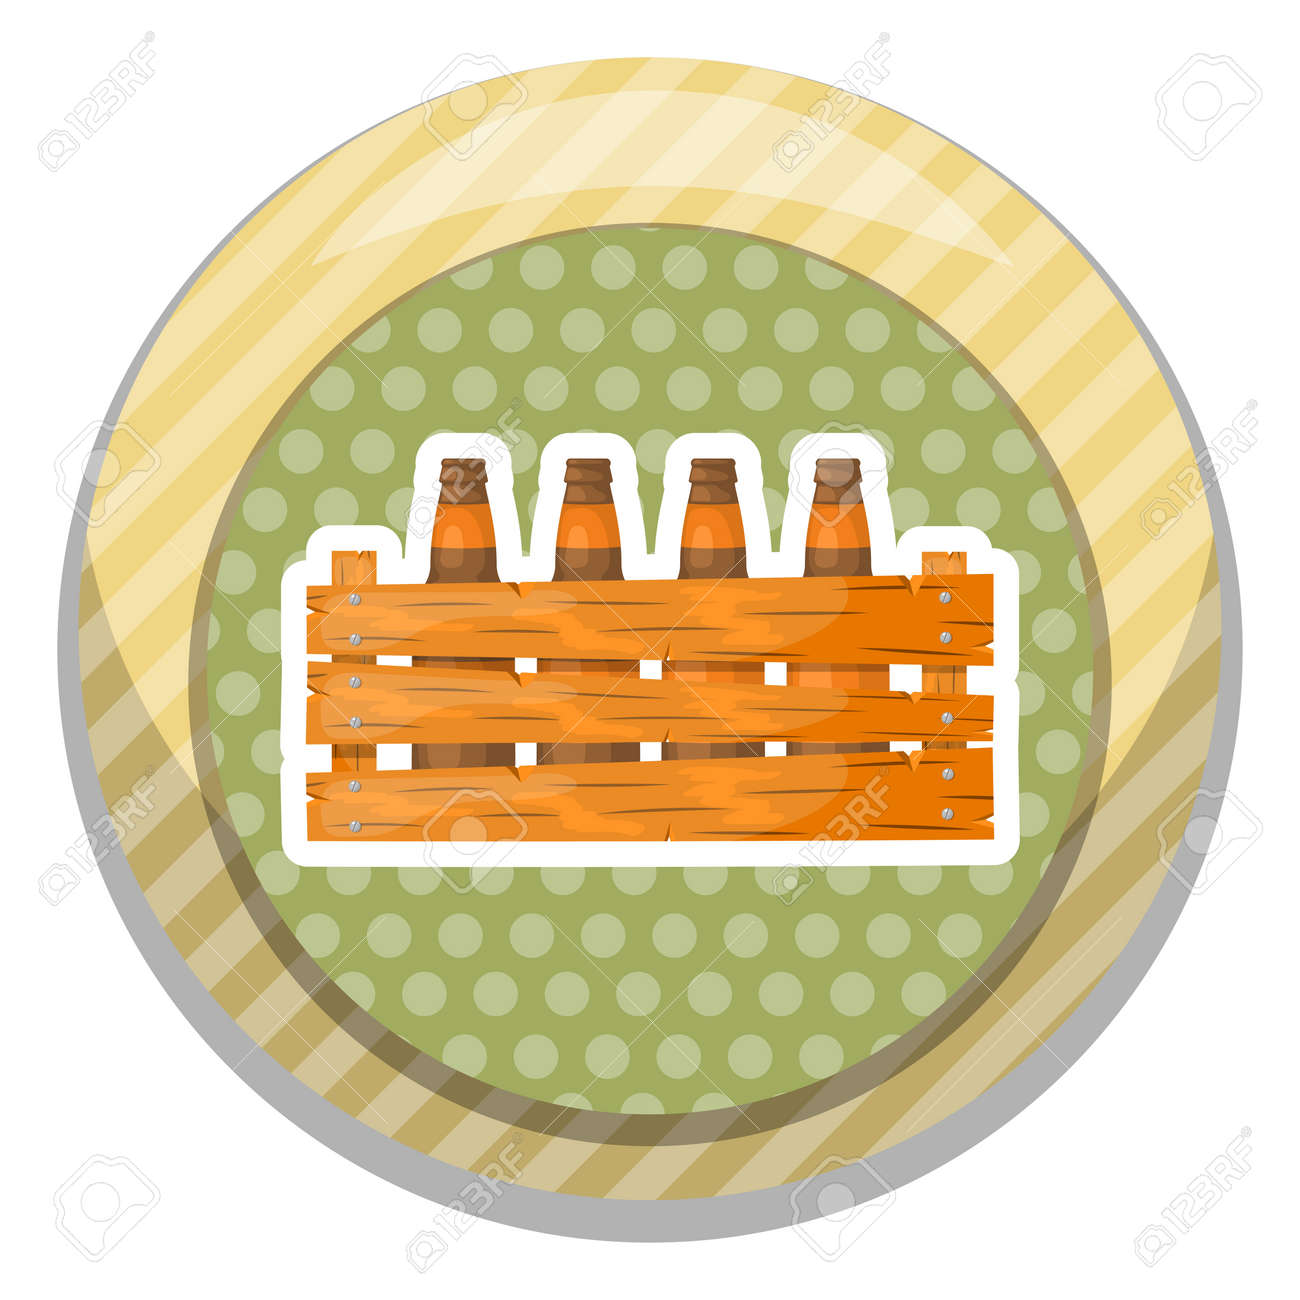 Bierkasten Clipart Beer Box Icon Vector Illustration In Cartoon Style